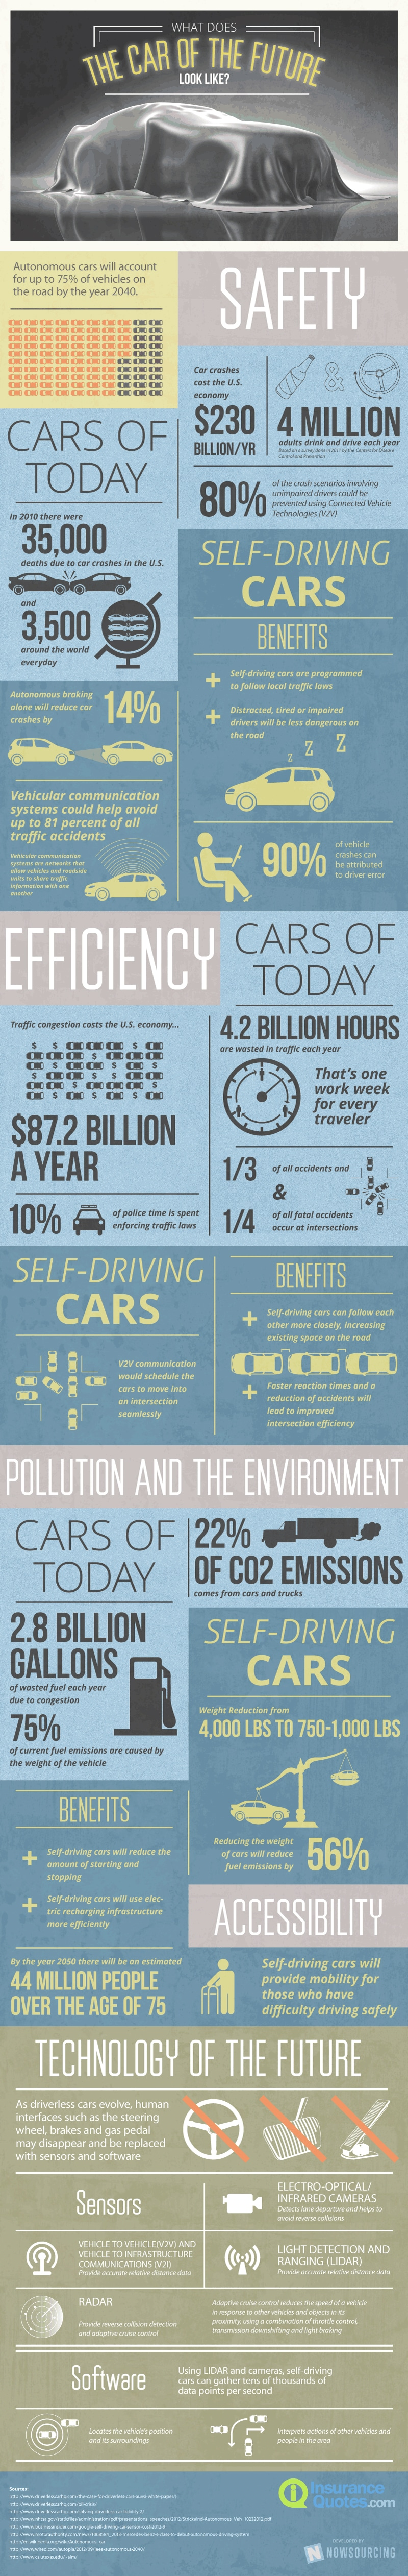 Driverless Cars Are Coming Sooner Than You May Think [Infographic]